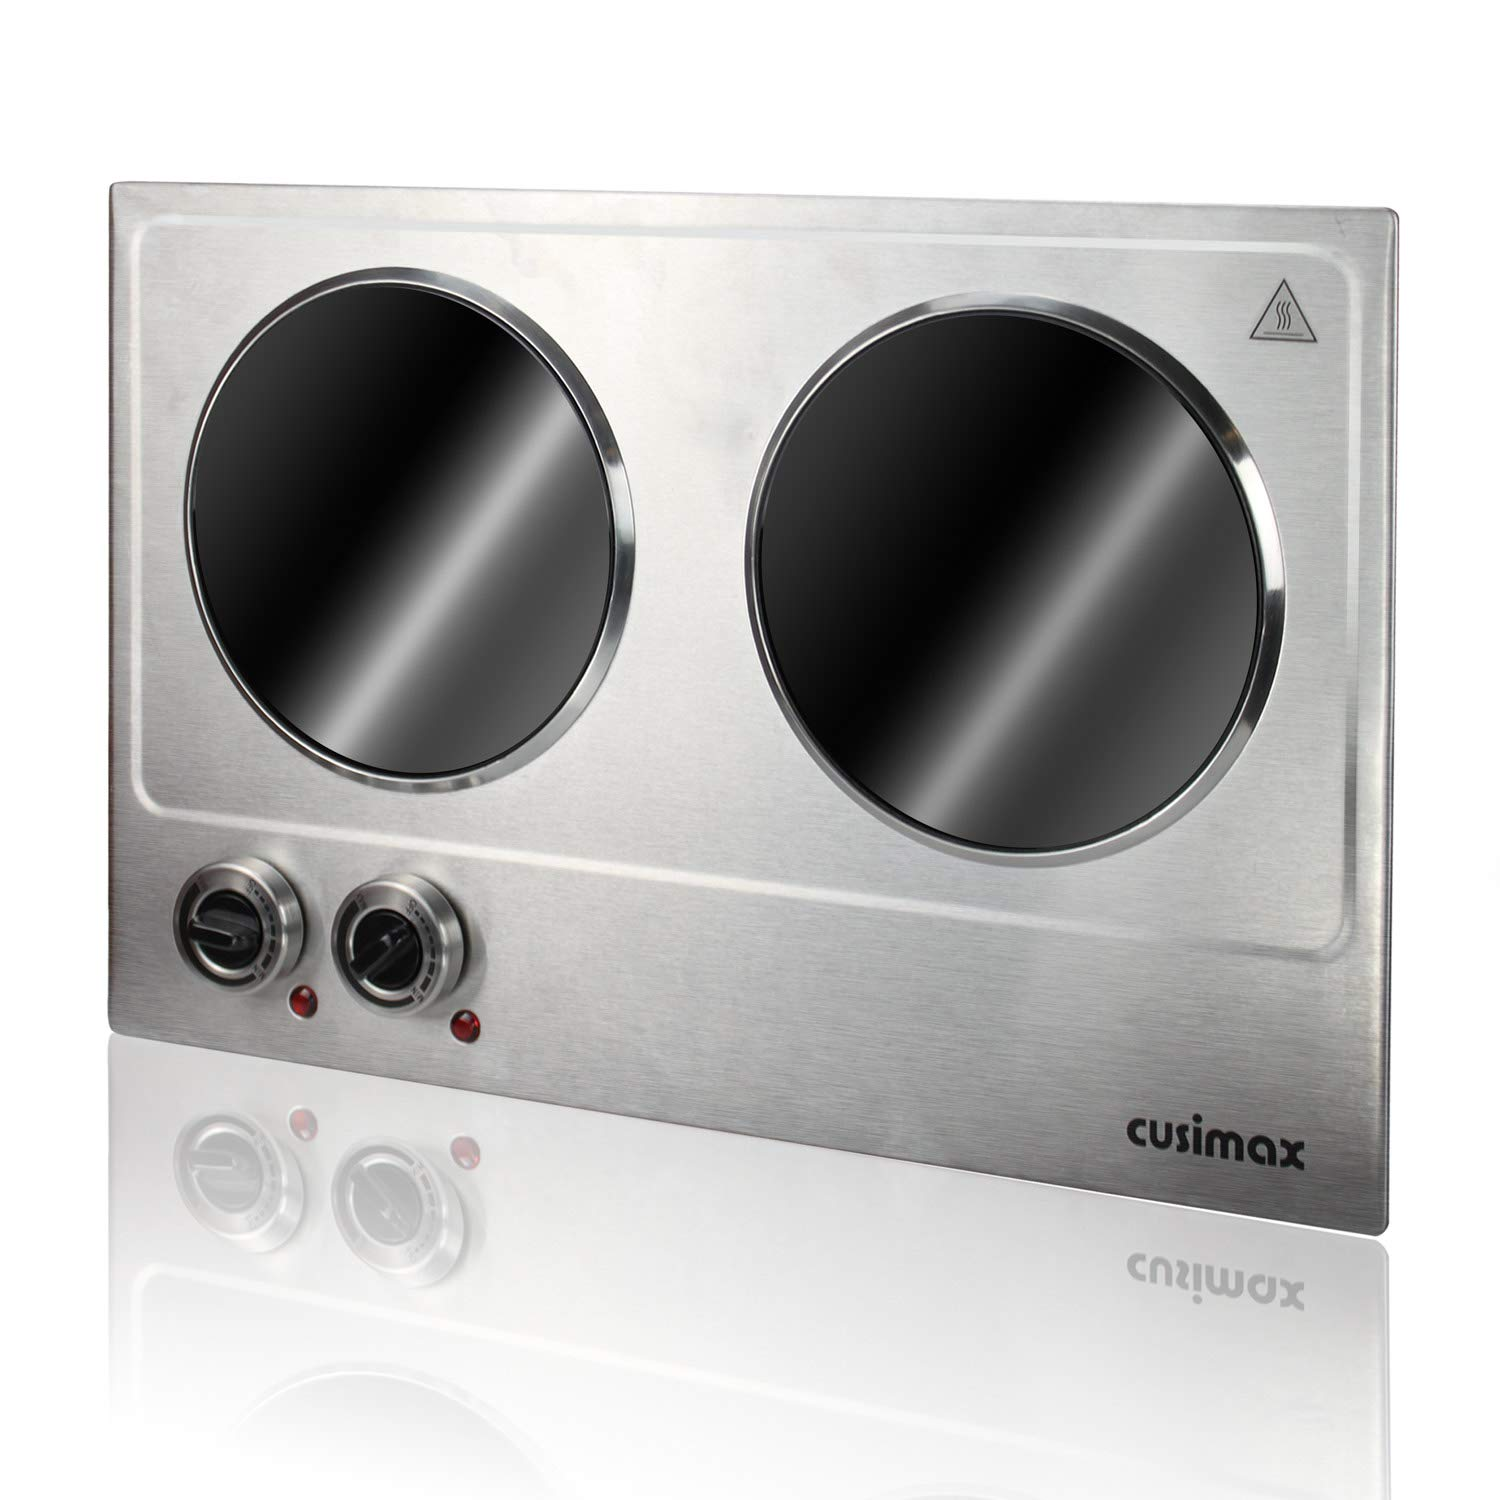 AZ CK2 Cusimax 1800W Infrared Cooktop, Ceramic Double Countertop Burner, Electric Hot Plate for Cooking, Dual Temperature Control, CMIP-C180, Stainless Steel